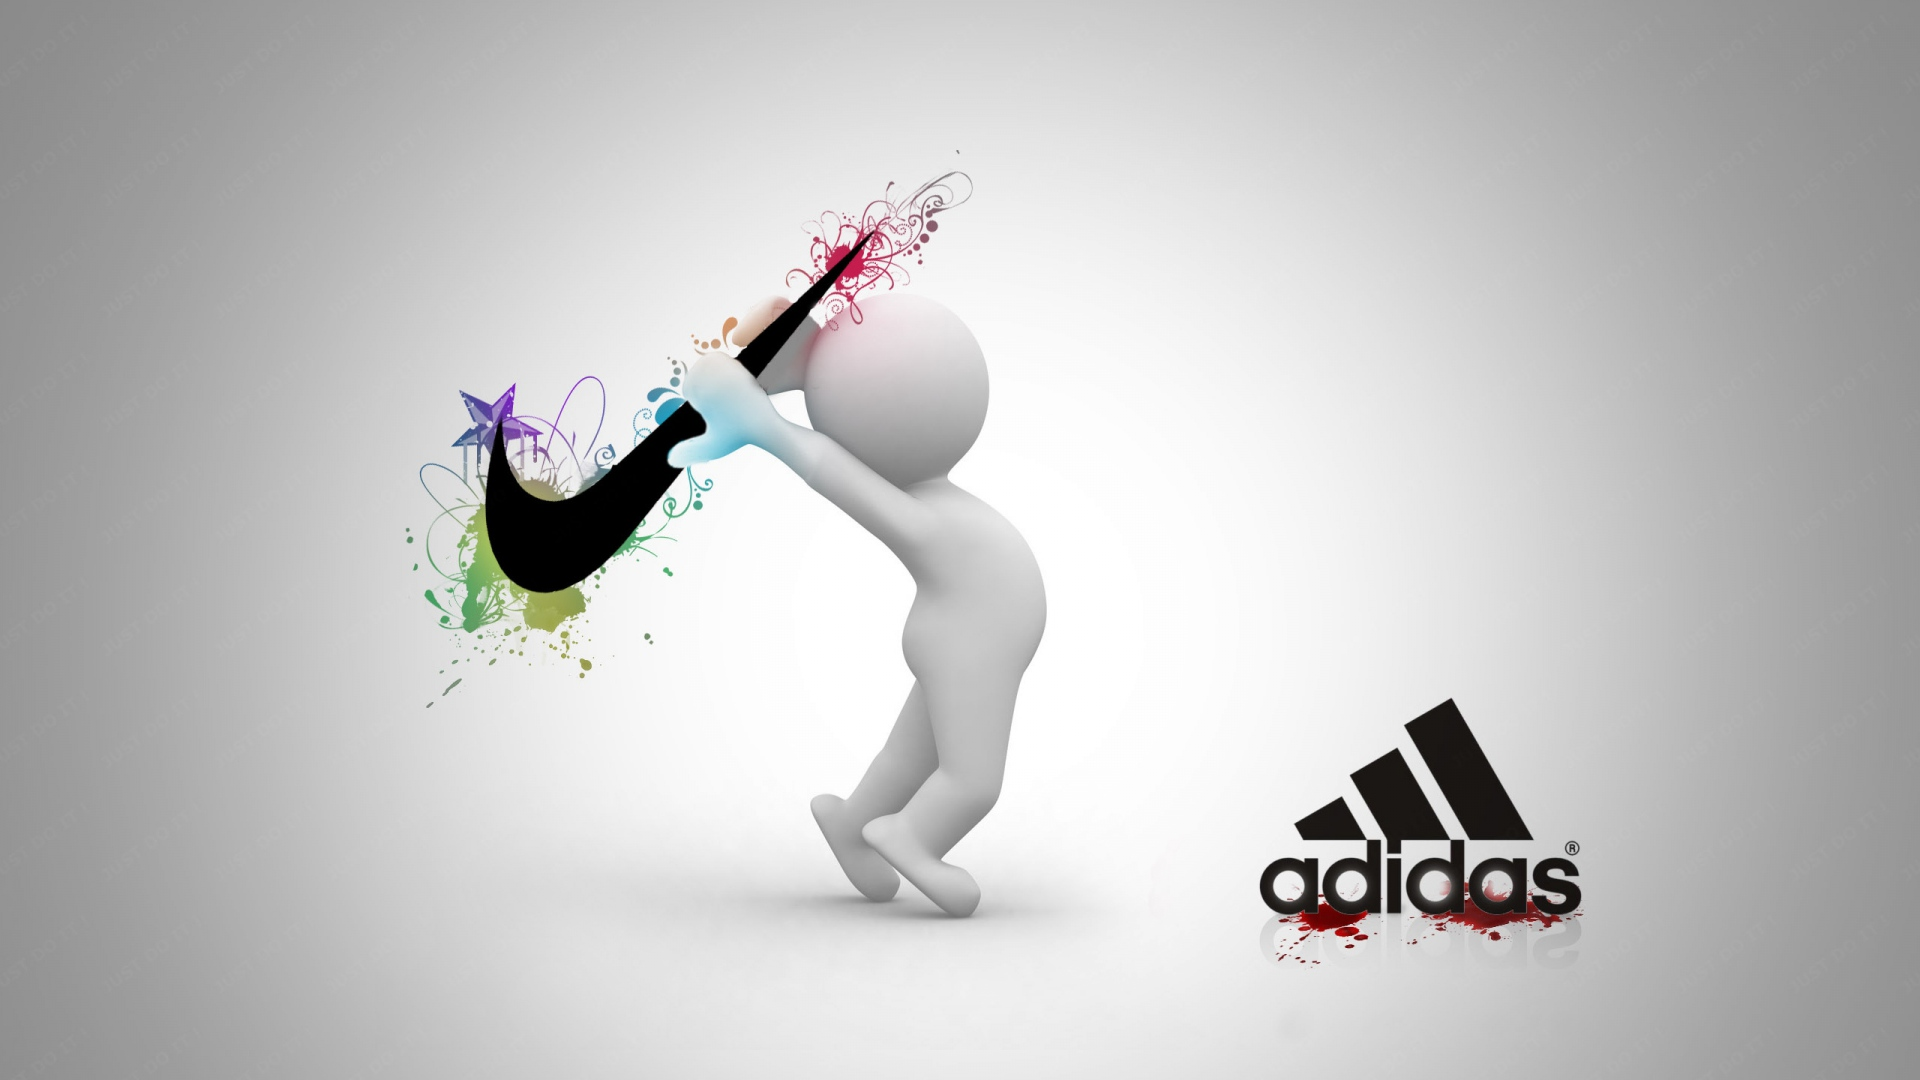 Adidas clipart high resolution Download hd Clipart Download Free